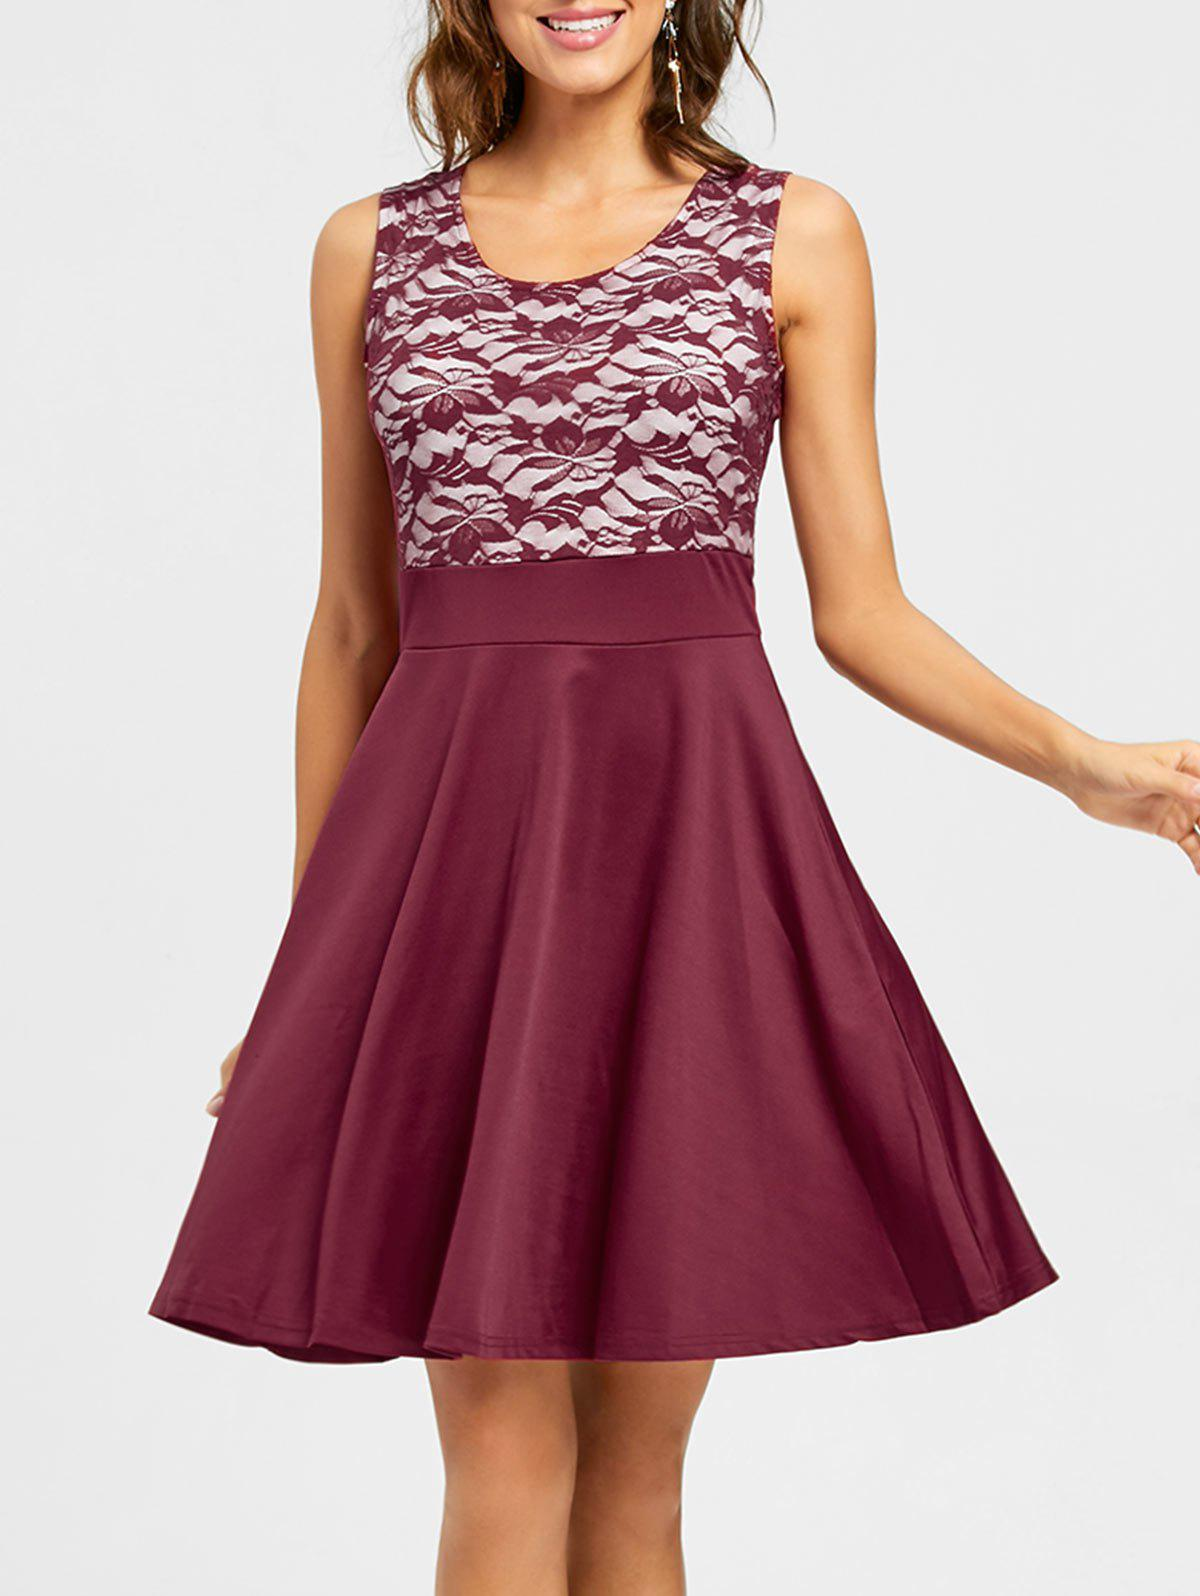 Sleeveless Floral Lace Panel Fit and Flare Dress - WINE RED M